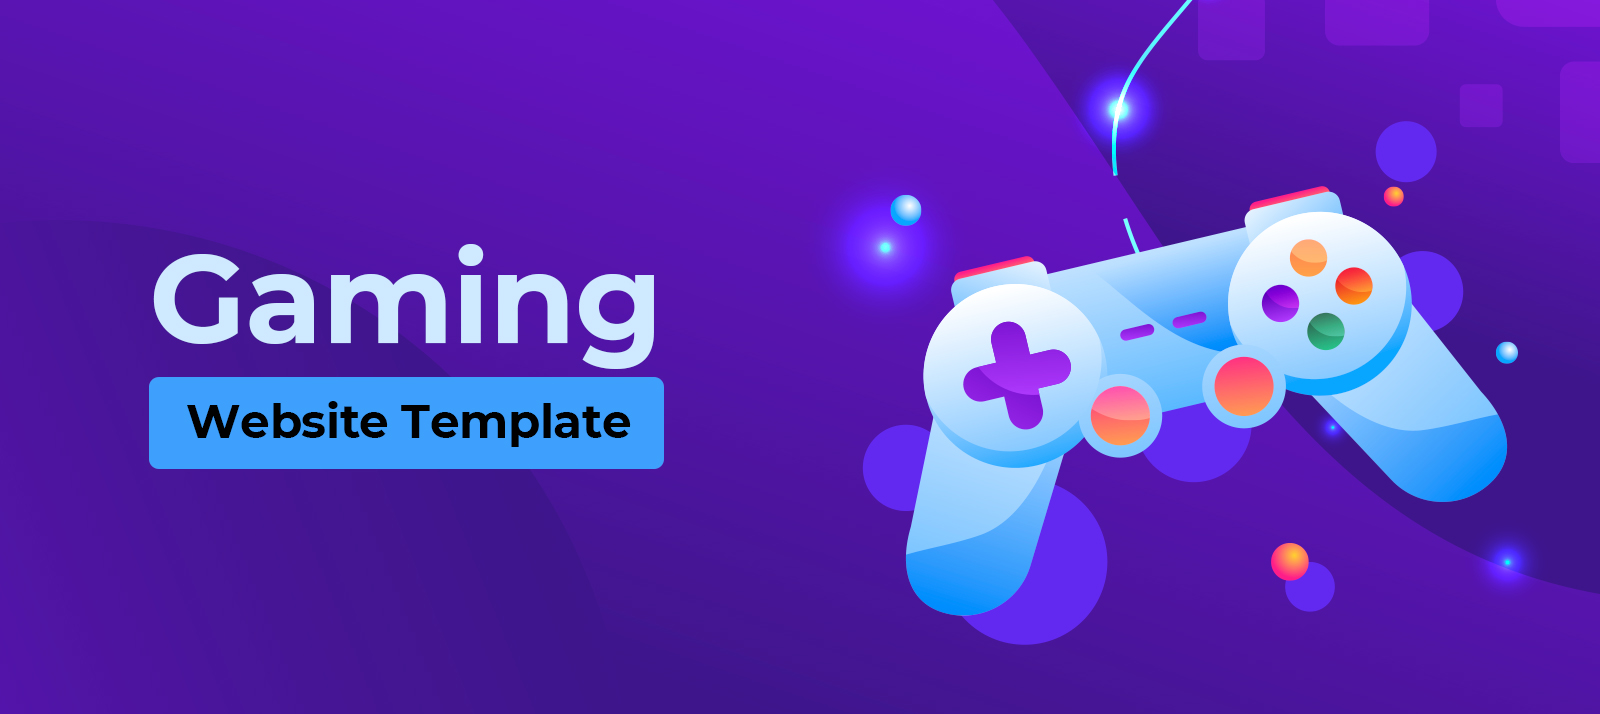 17 New and Trending Gaming Website Templates For Game Developers